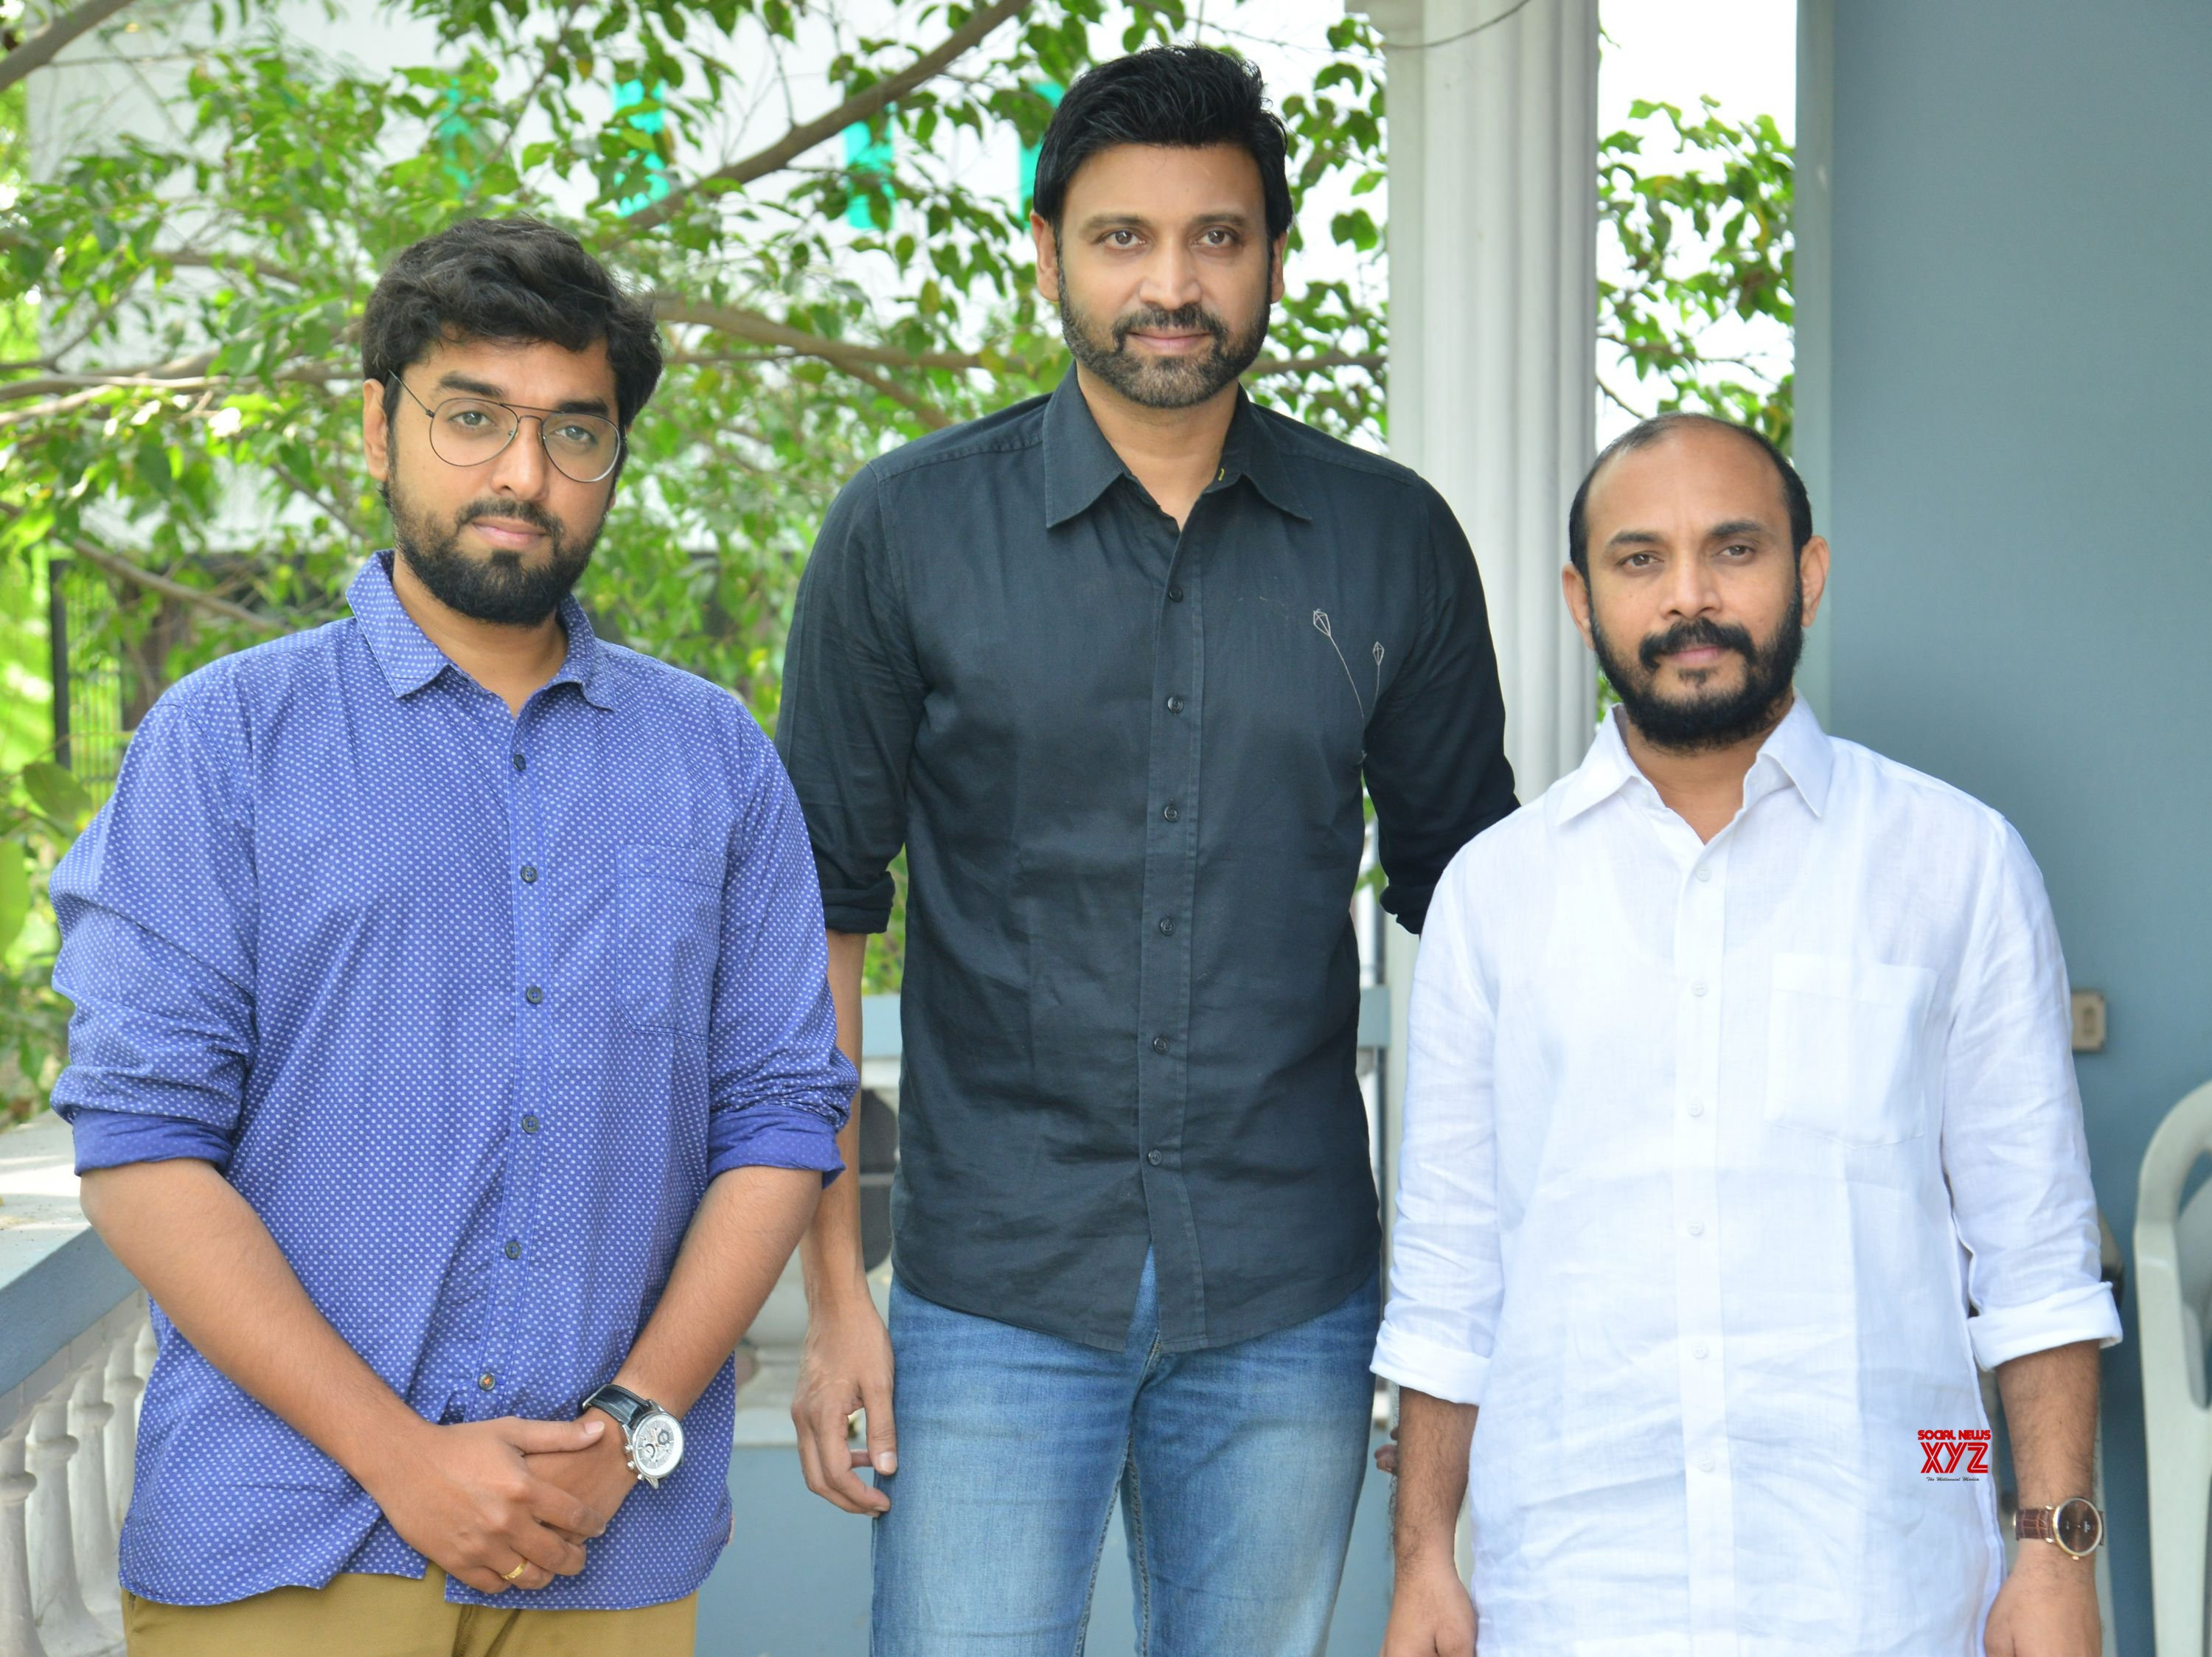 Subrahmanyapuram movie collections are strong even on the election day: Sumanth